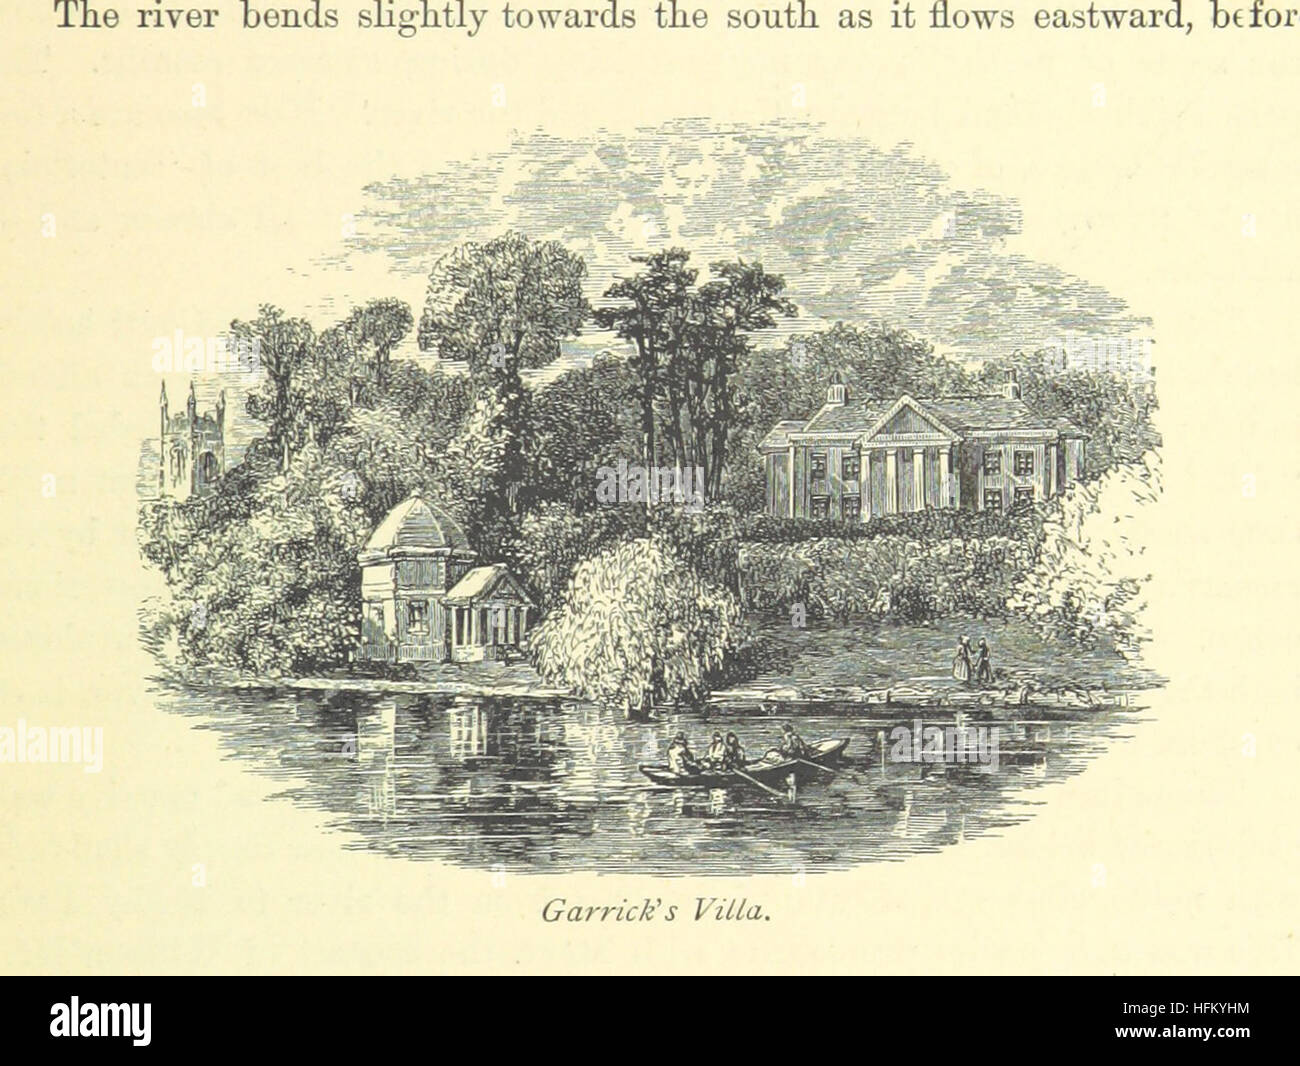 Image taken from page 283 of '[The book of the Thames.]' Image taken from page 283 of '[The book of - Stock Image